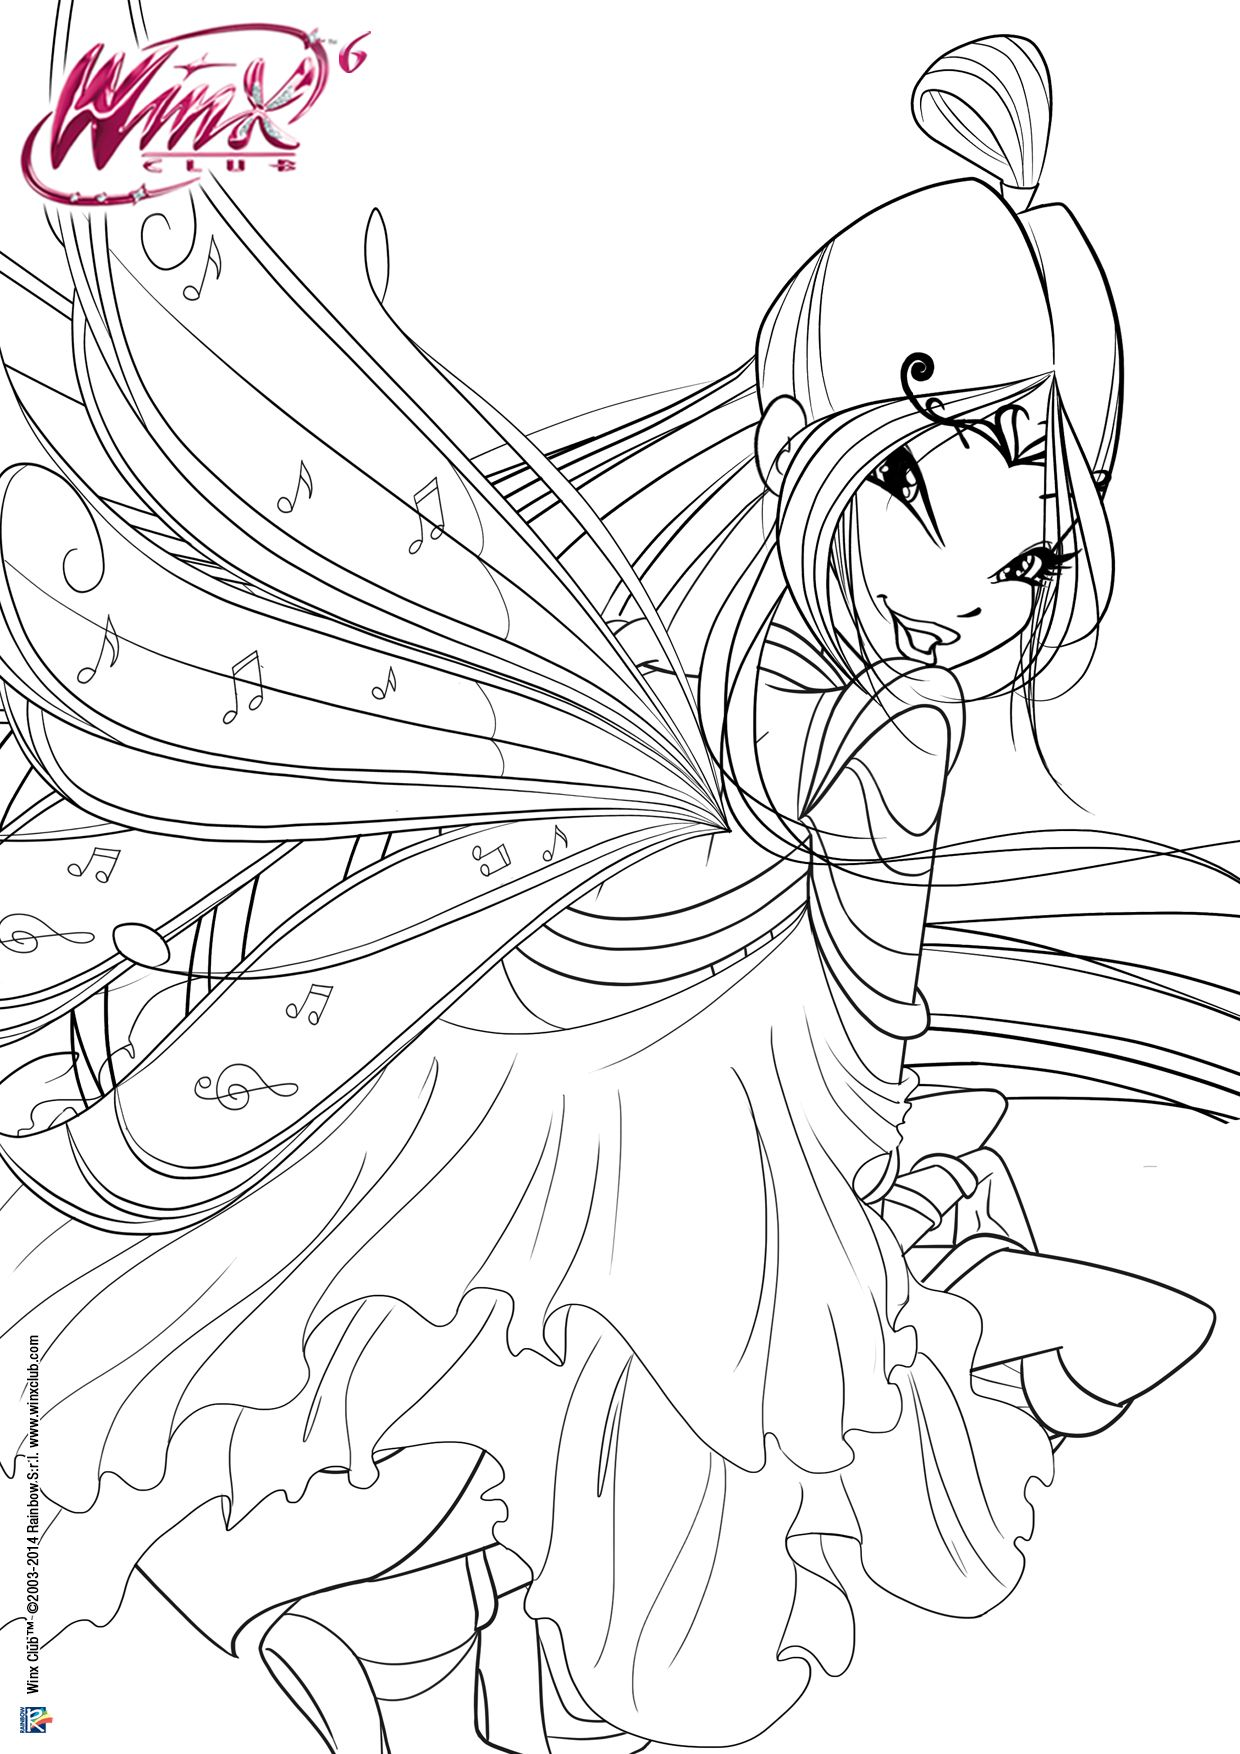 Winx club tumblr winx club pinterest winx club and Coloring book club for adults